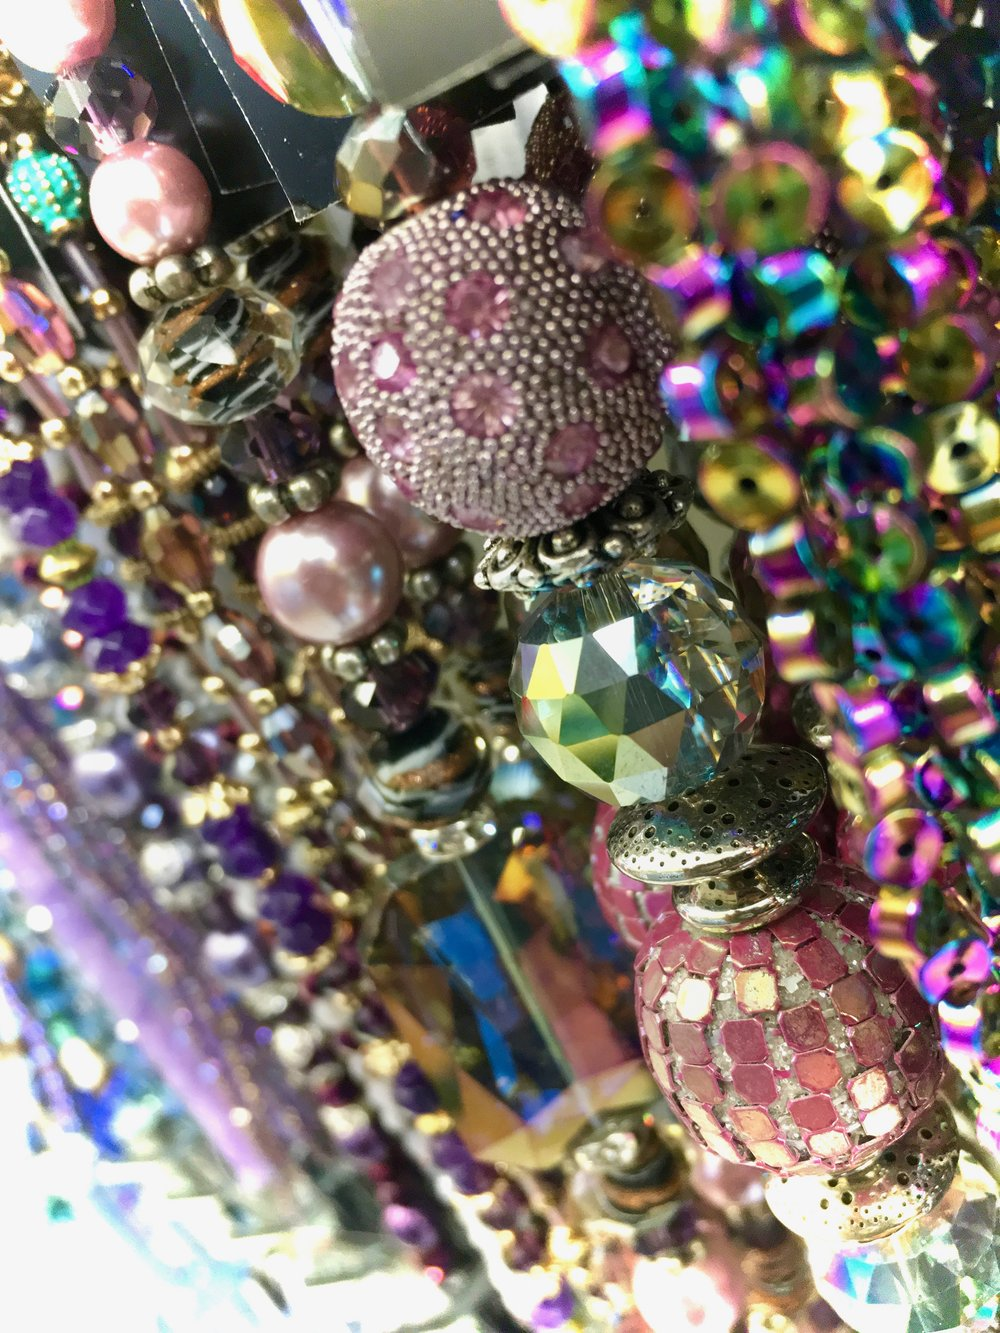 Twinkle, Twinkle - While running an errand for my Sunday school class, I saw this display of line after line of beads preening for the light, glittery in all their colors and shapes. Instead of buying one, I took the time to simply enjoy them ALL.